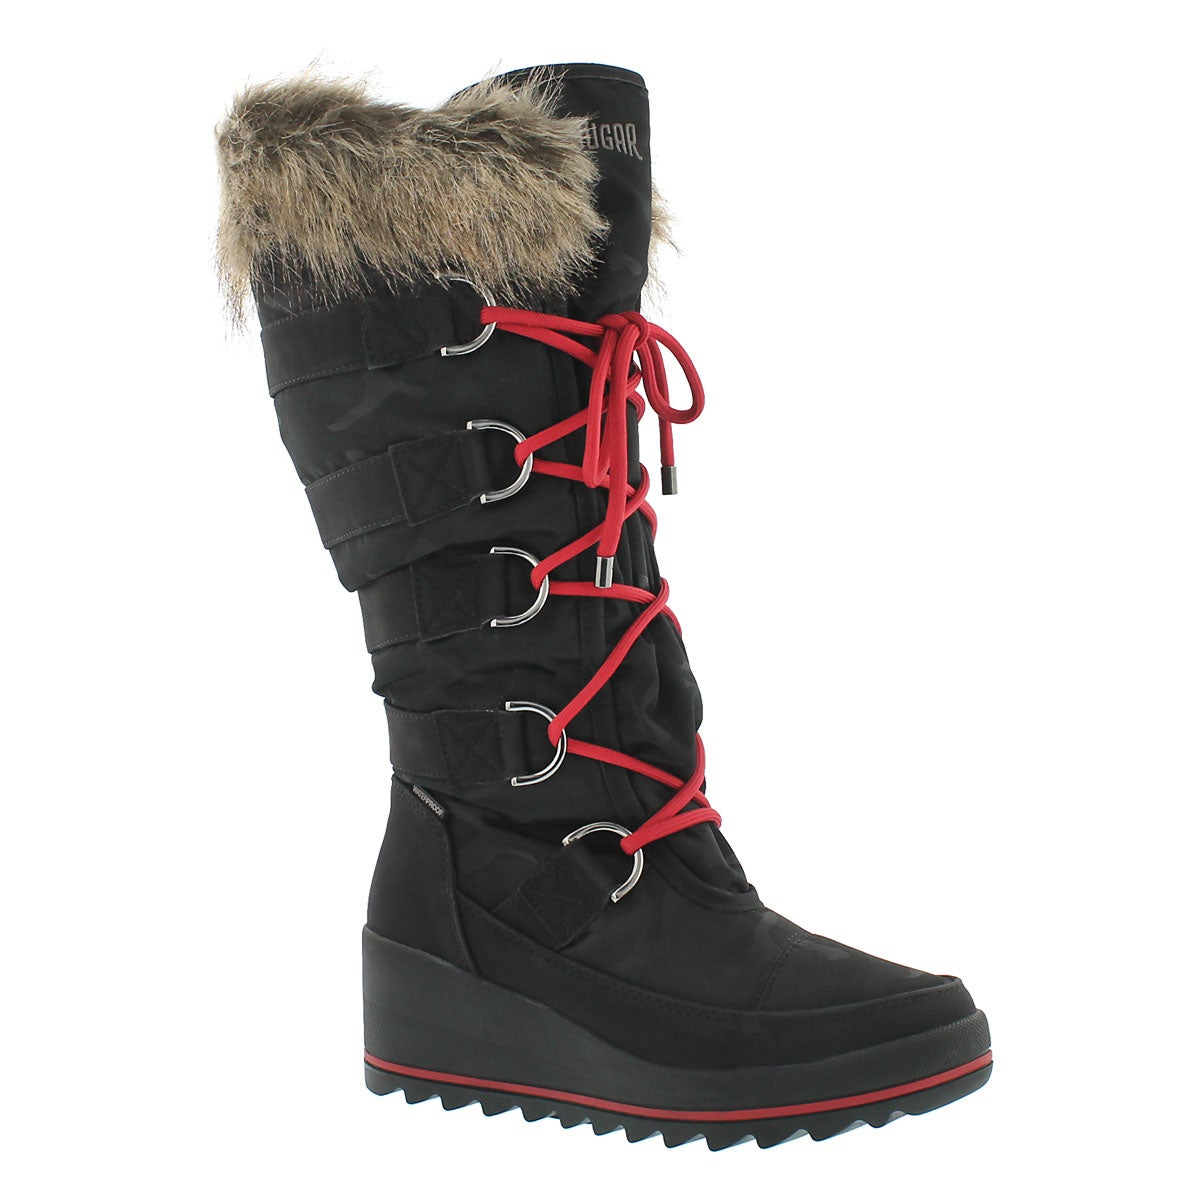 Women's LANCASTER black wpf pull on winter boots